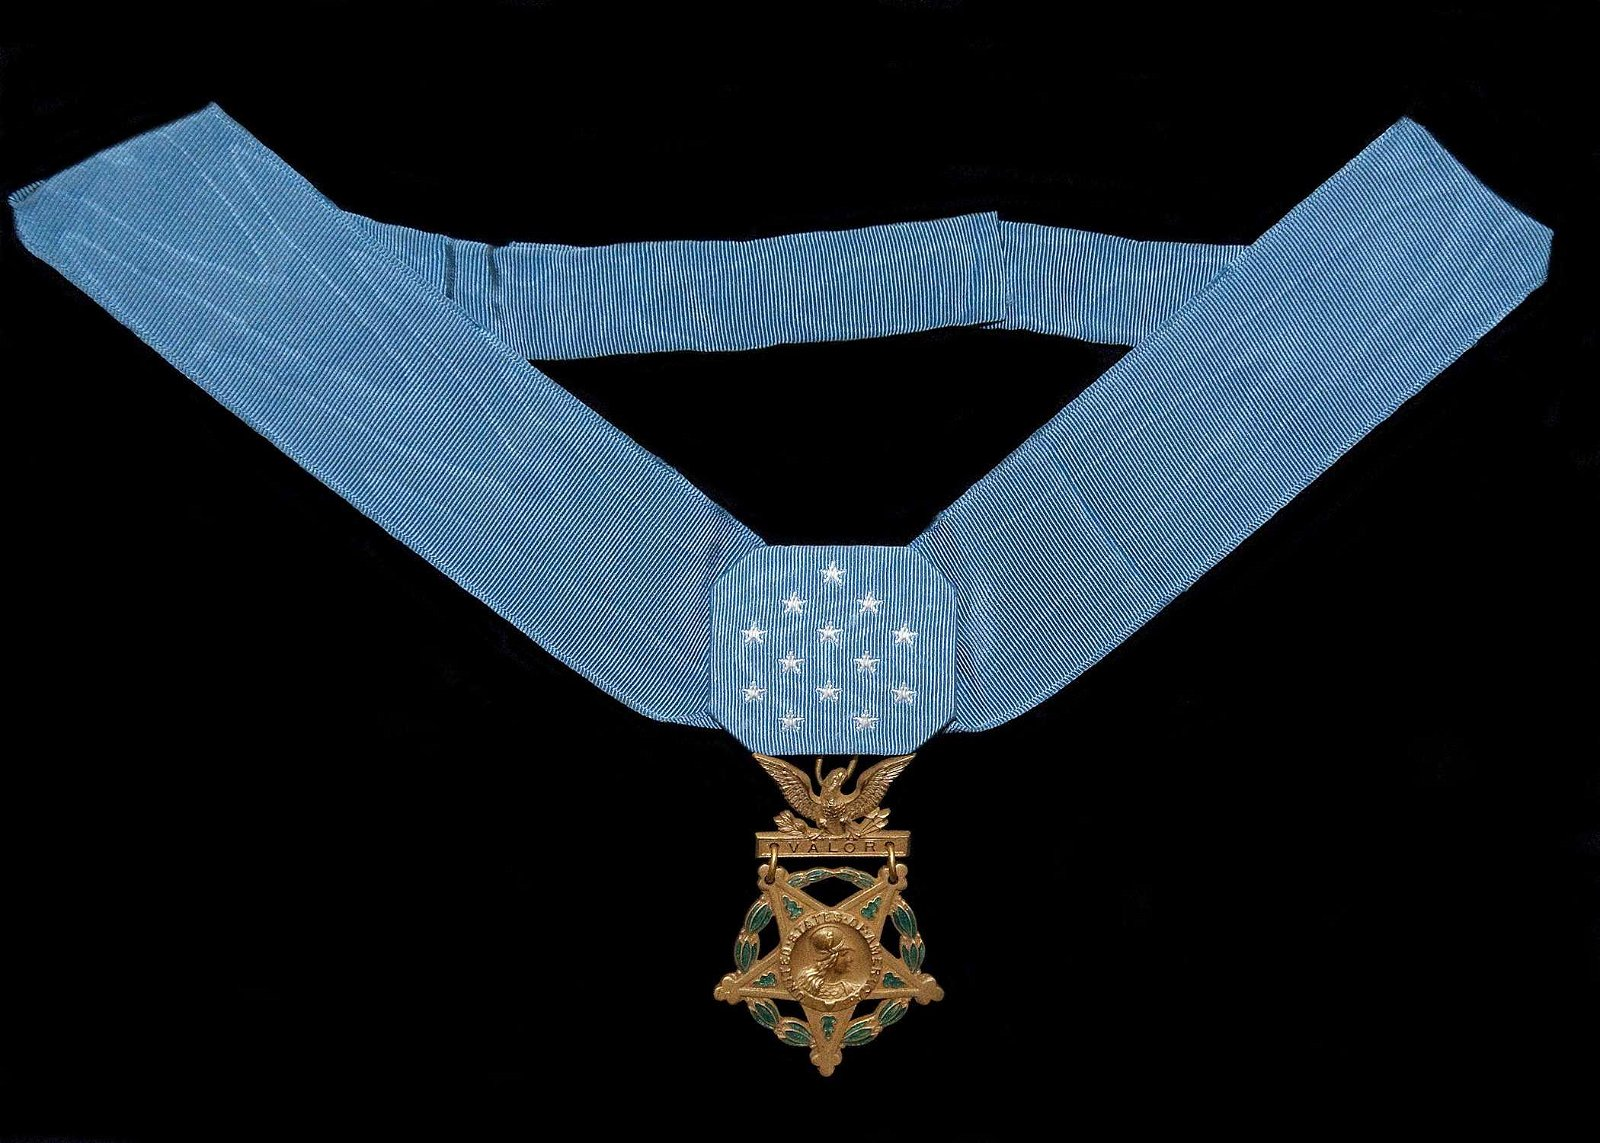 Medal of Honor Recipient Suffers From PTSD